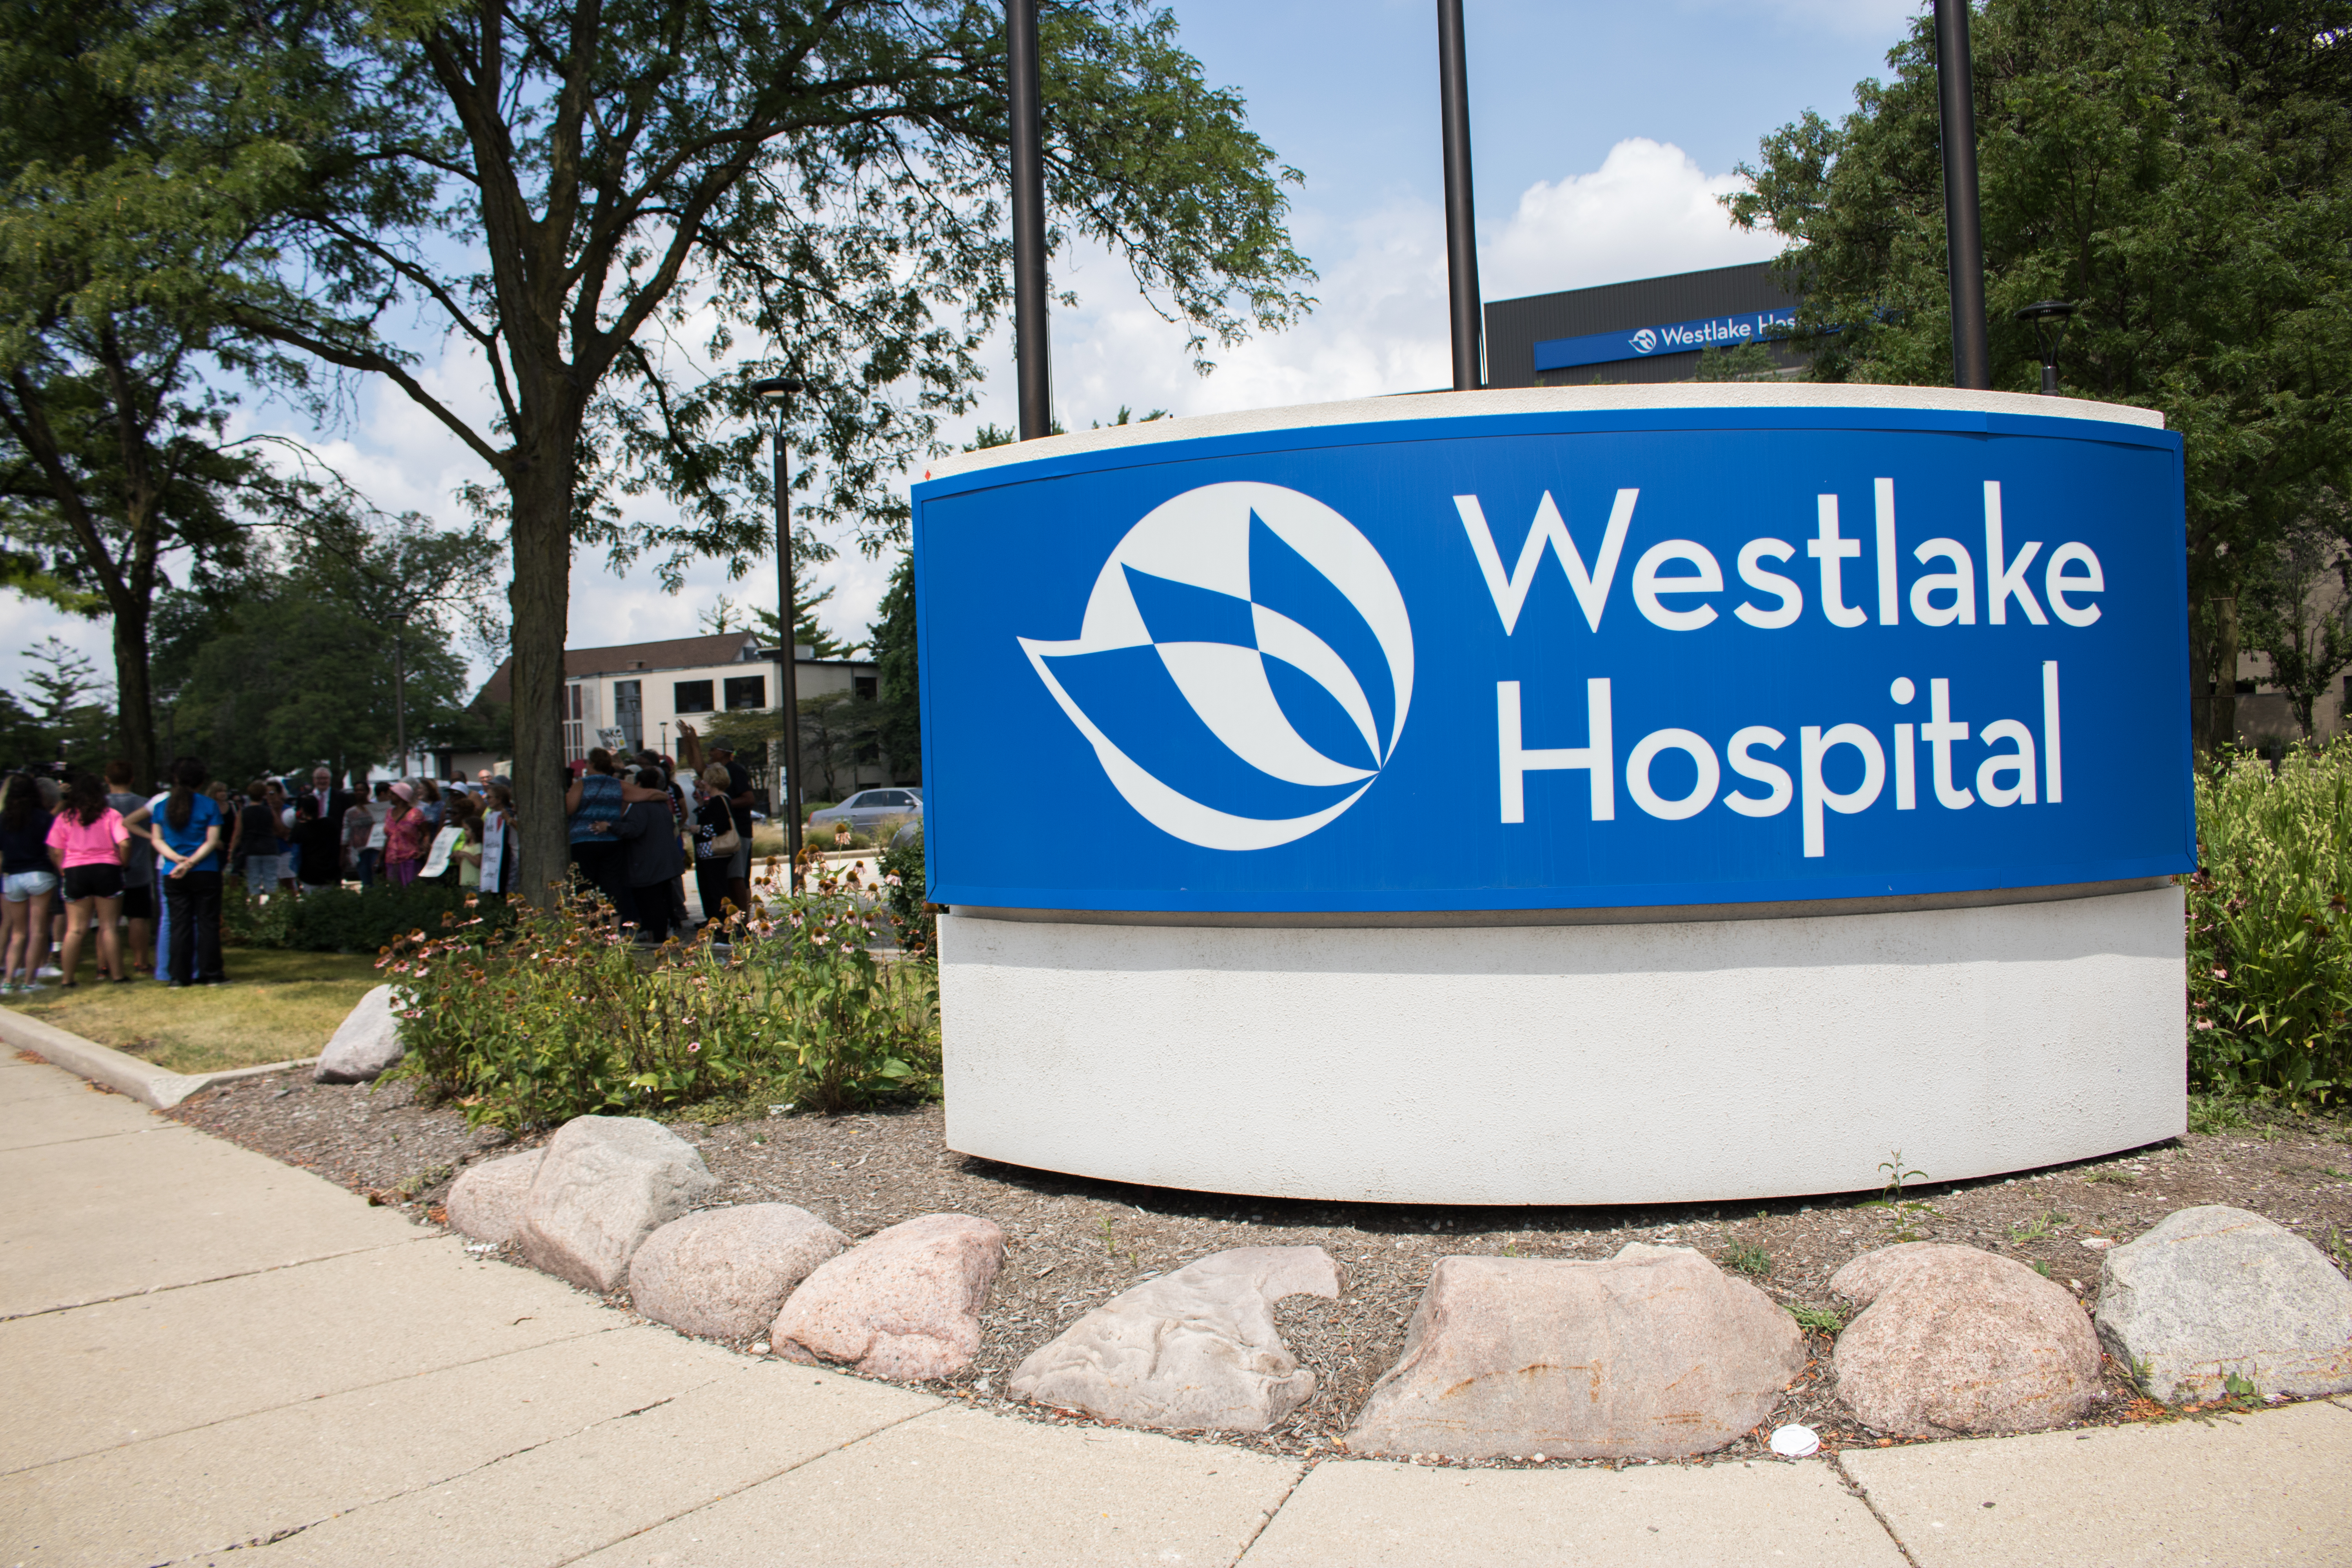 Westlake Hospital, 1225 W Lake St in Melrose Park,